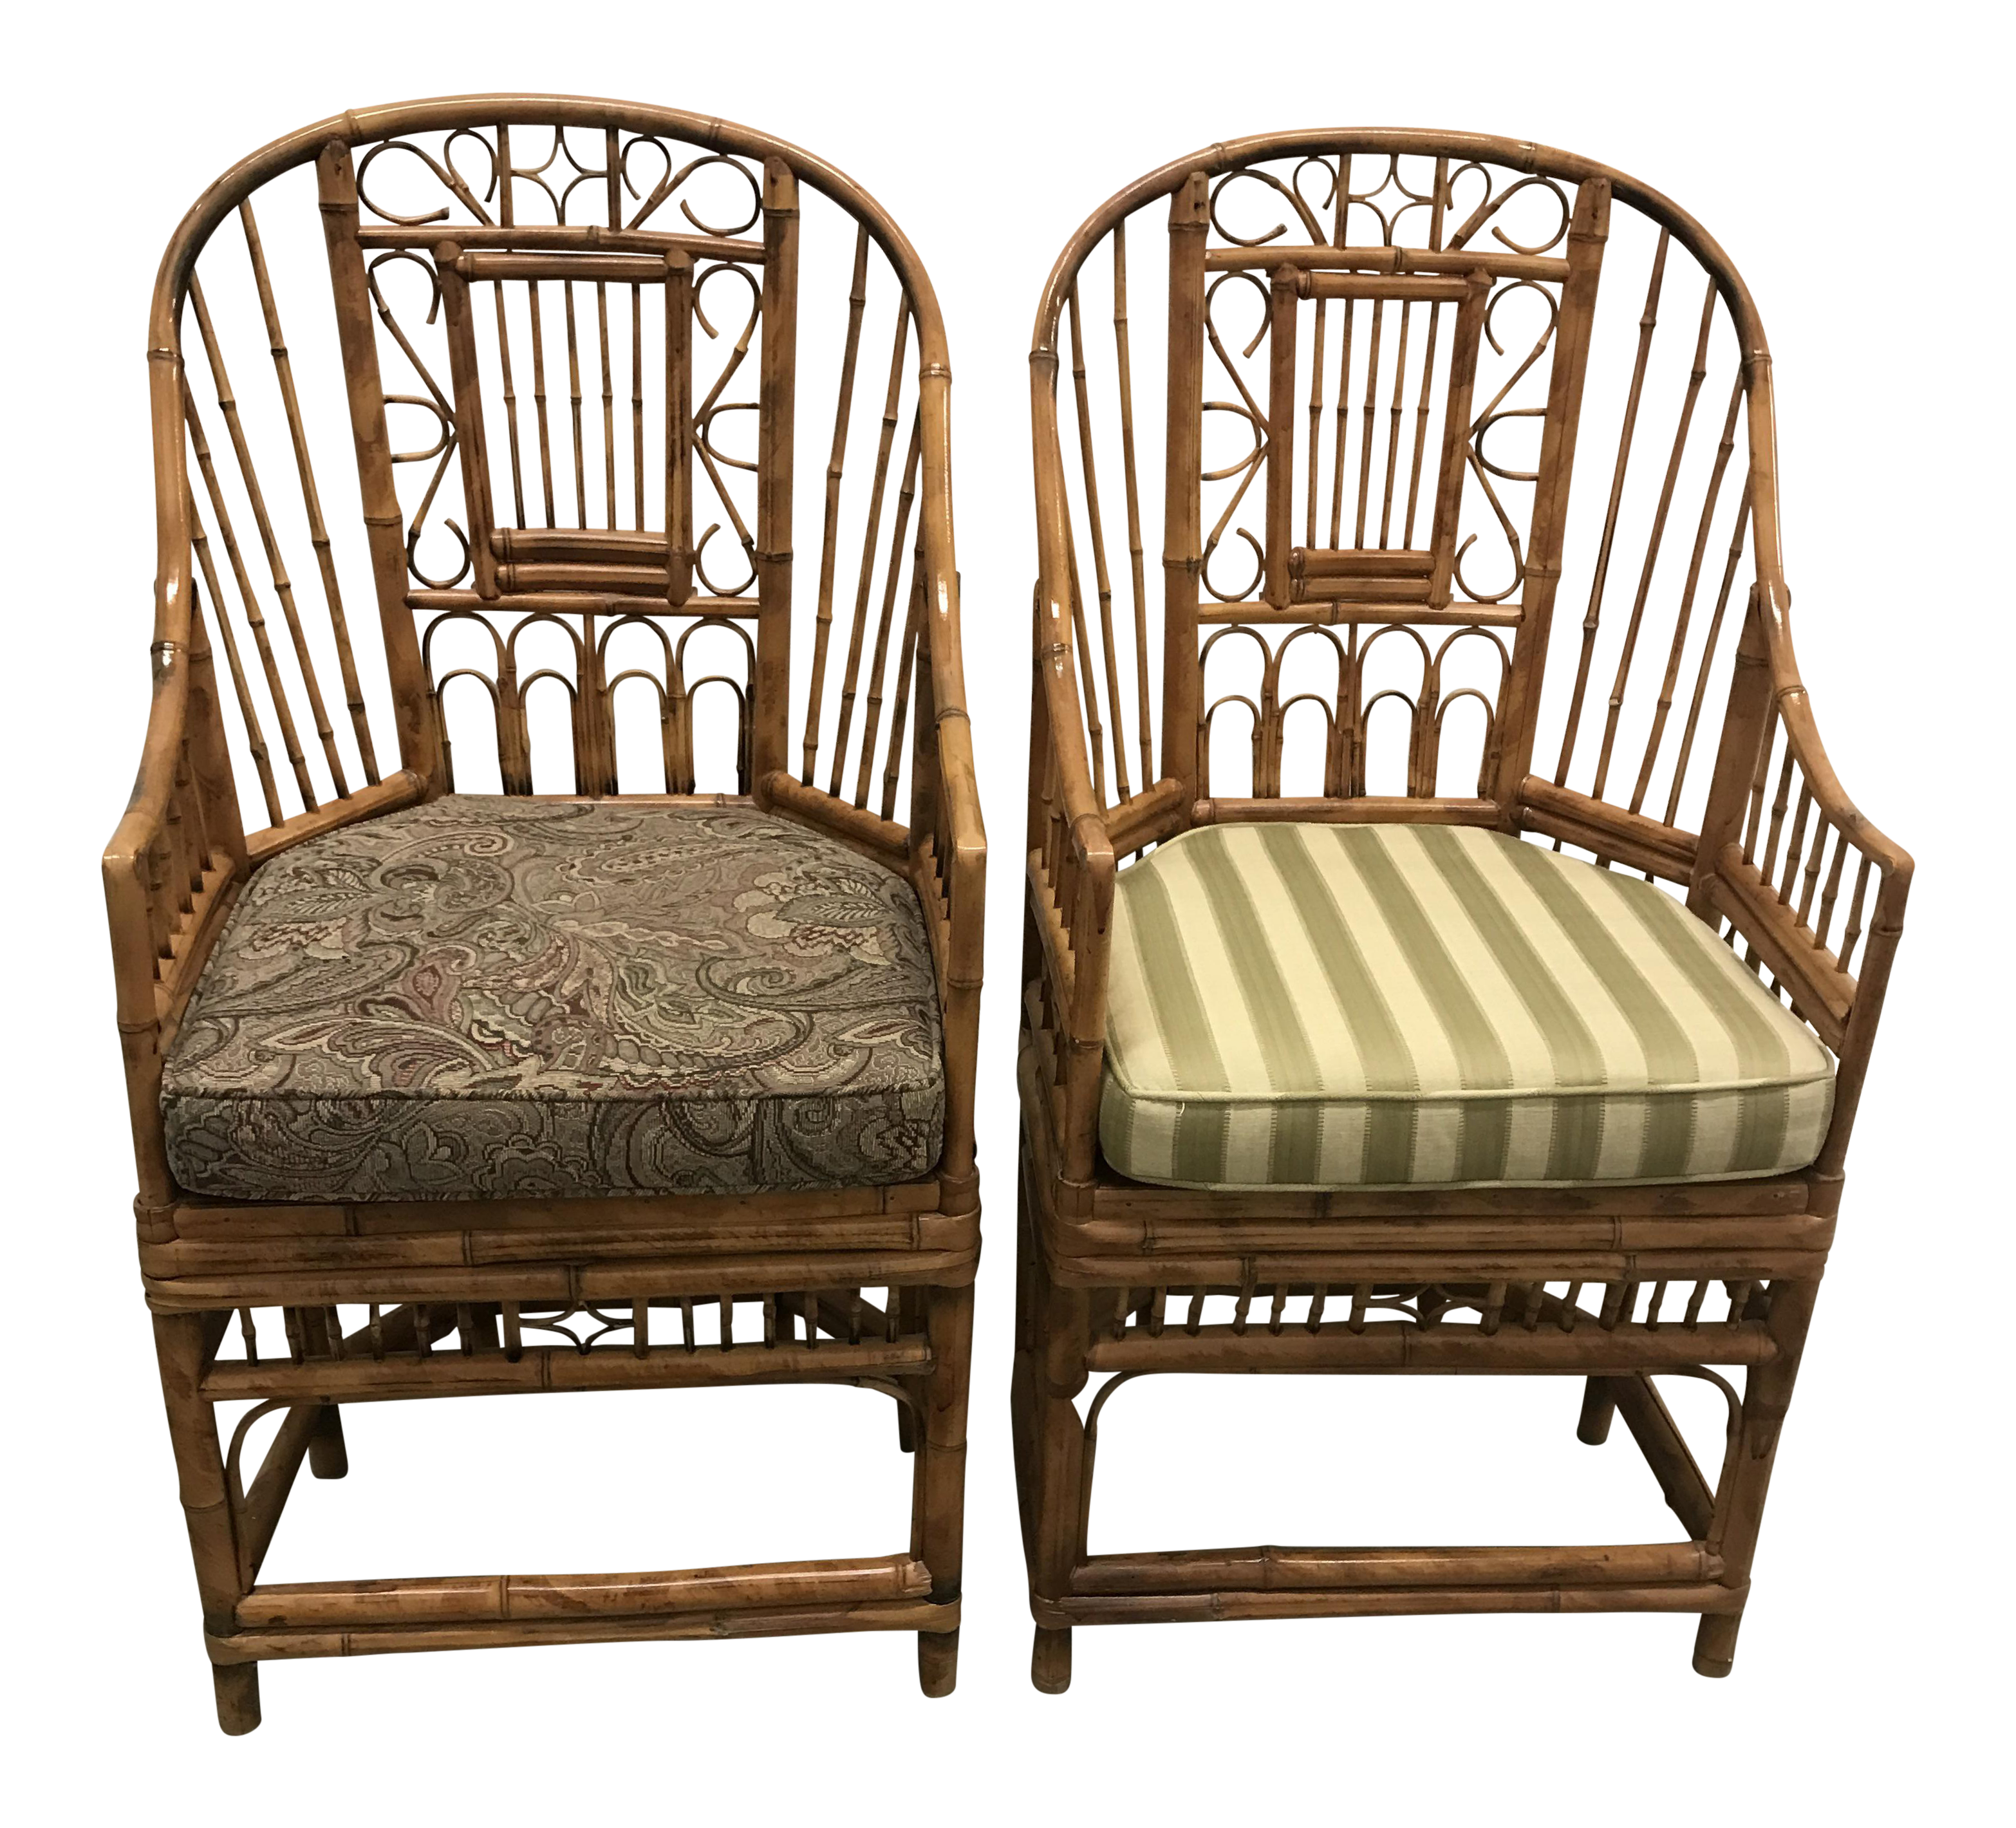 bamboo brighton chippendale chairs a pair